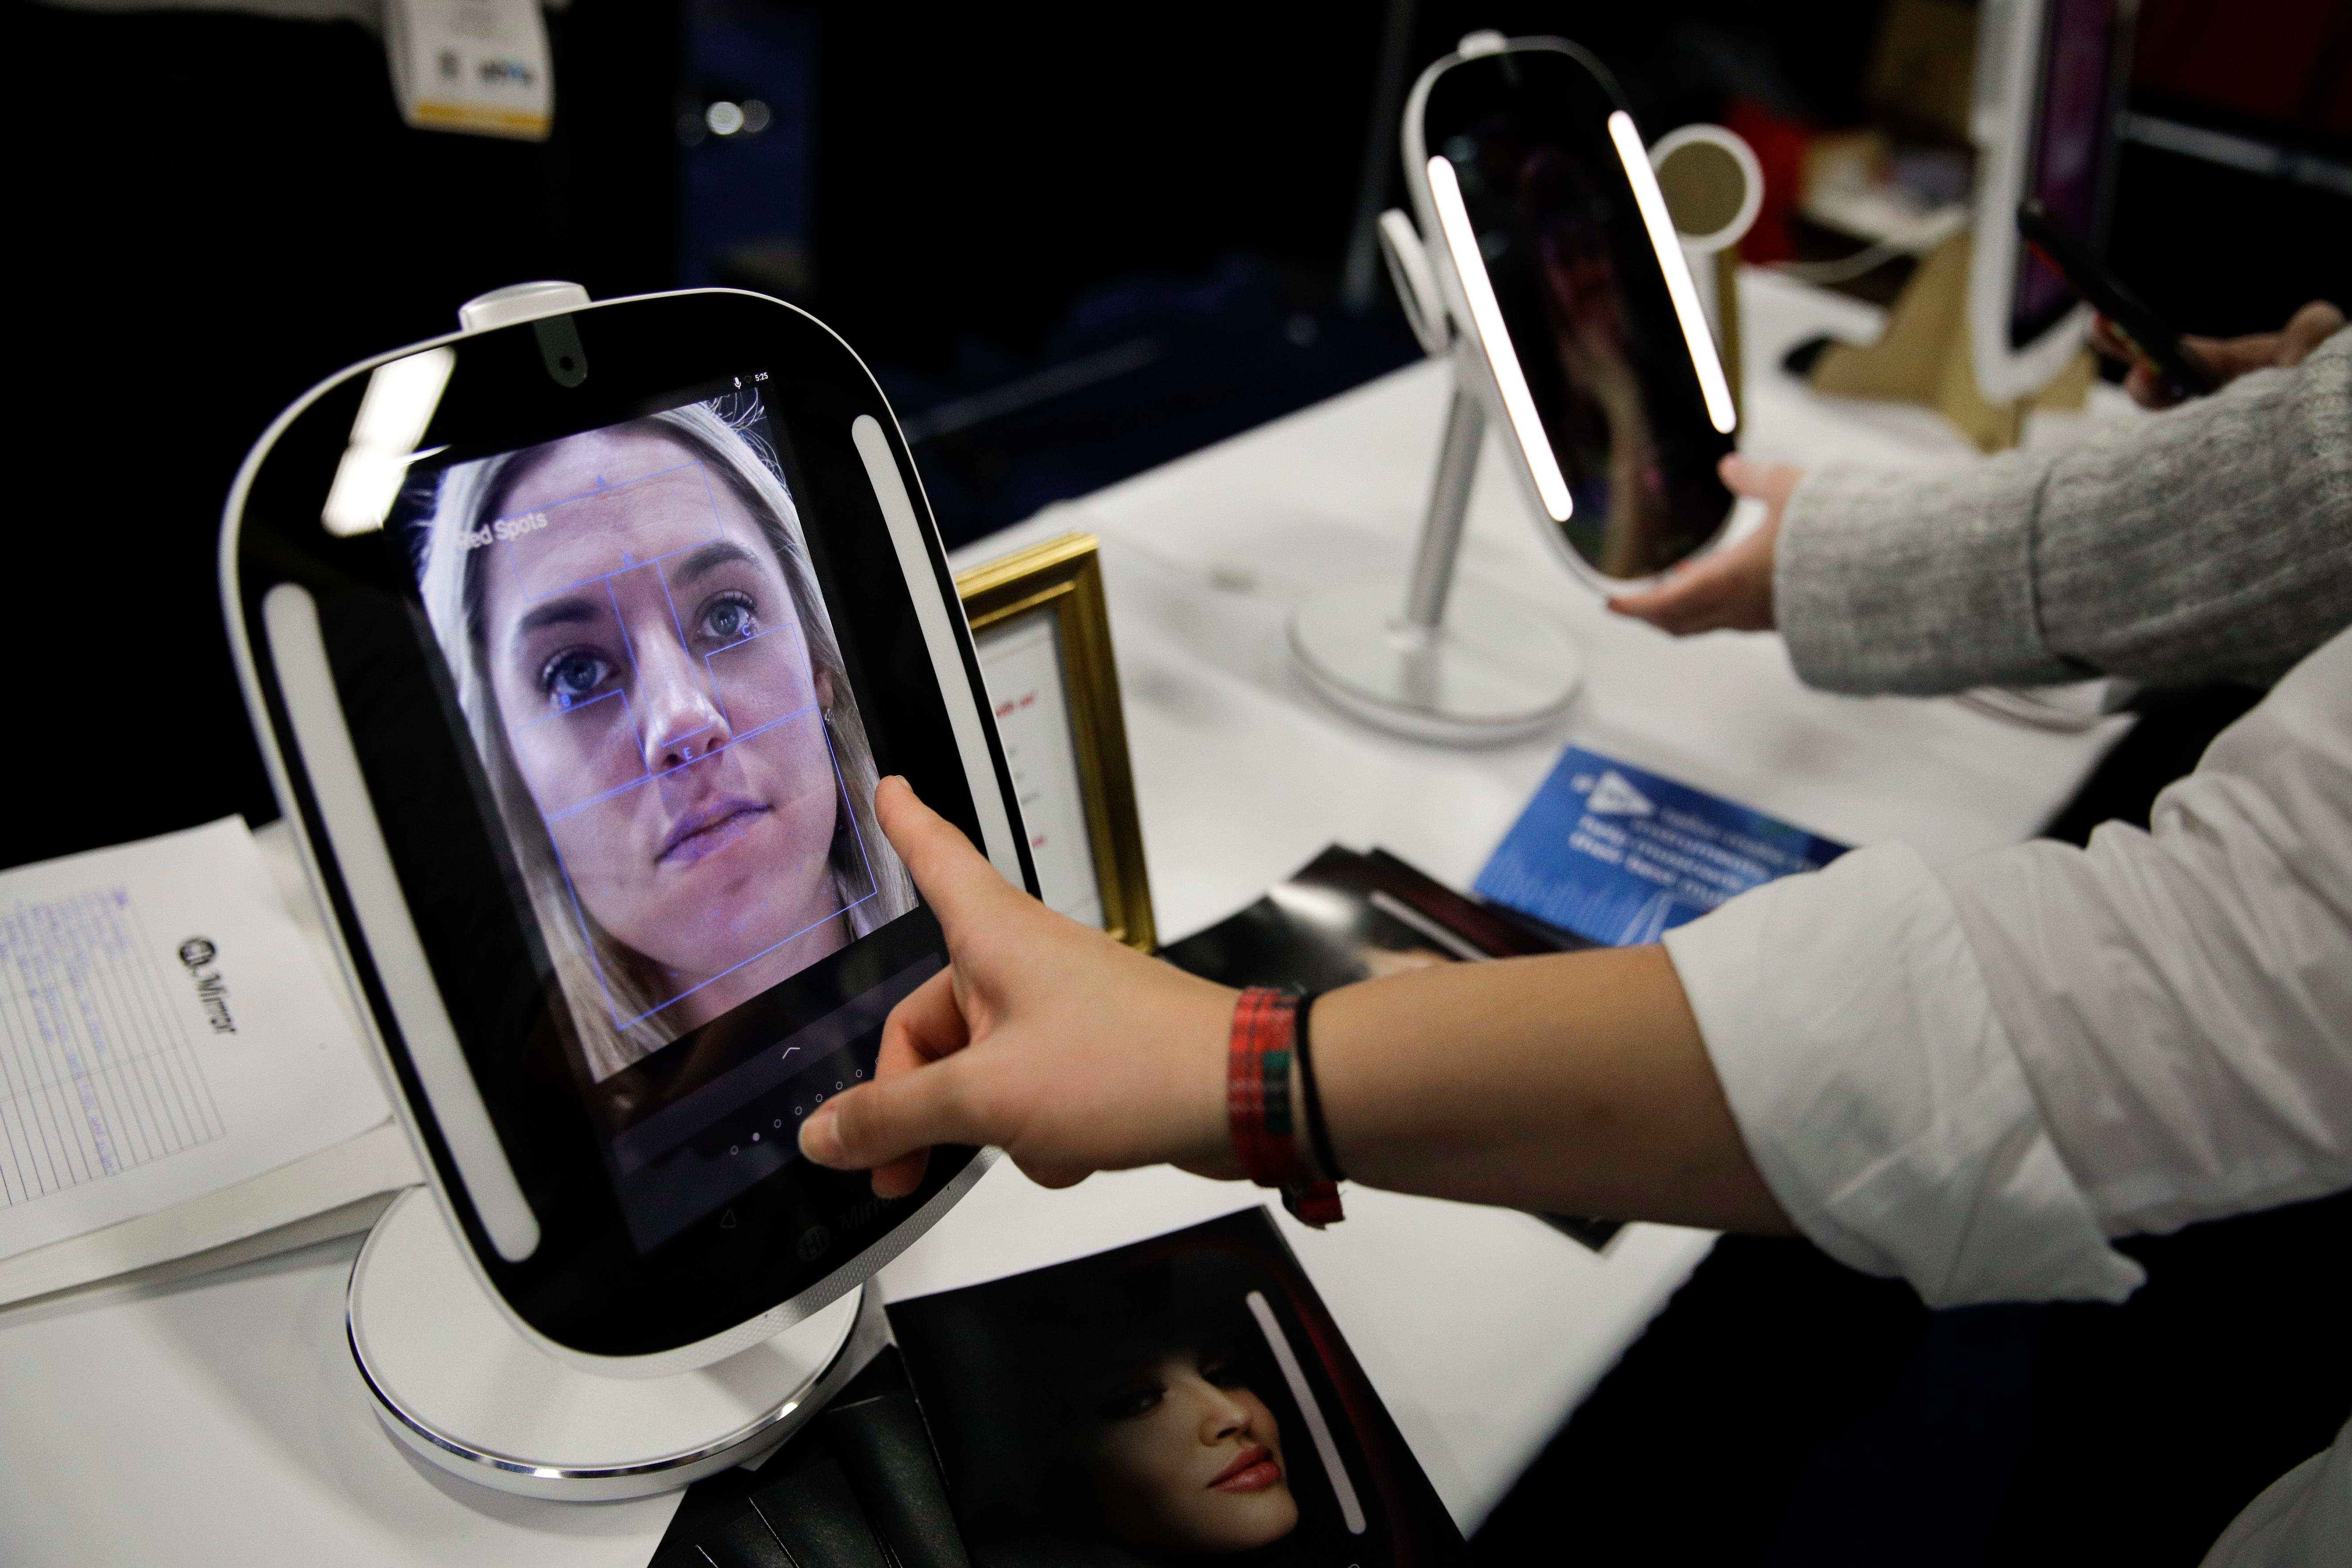 The HiMirror Mini, an internet-connected smart mirror with Amazon's Alexa, is displayed during CES Unveiled at CES International Sunday, Jan. 7, 2018, in Las Vegas. (AP Photo/Jae C. Hong)